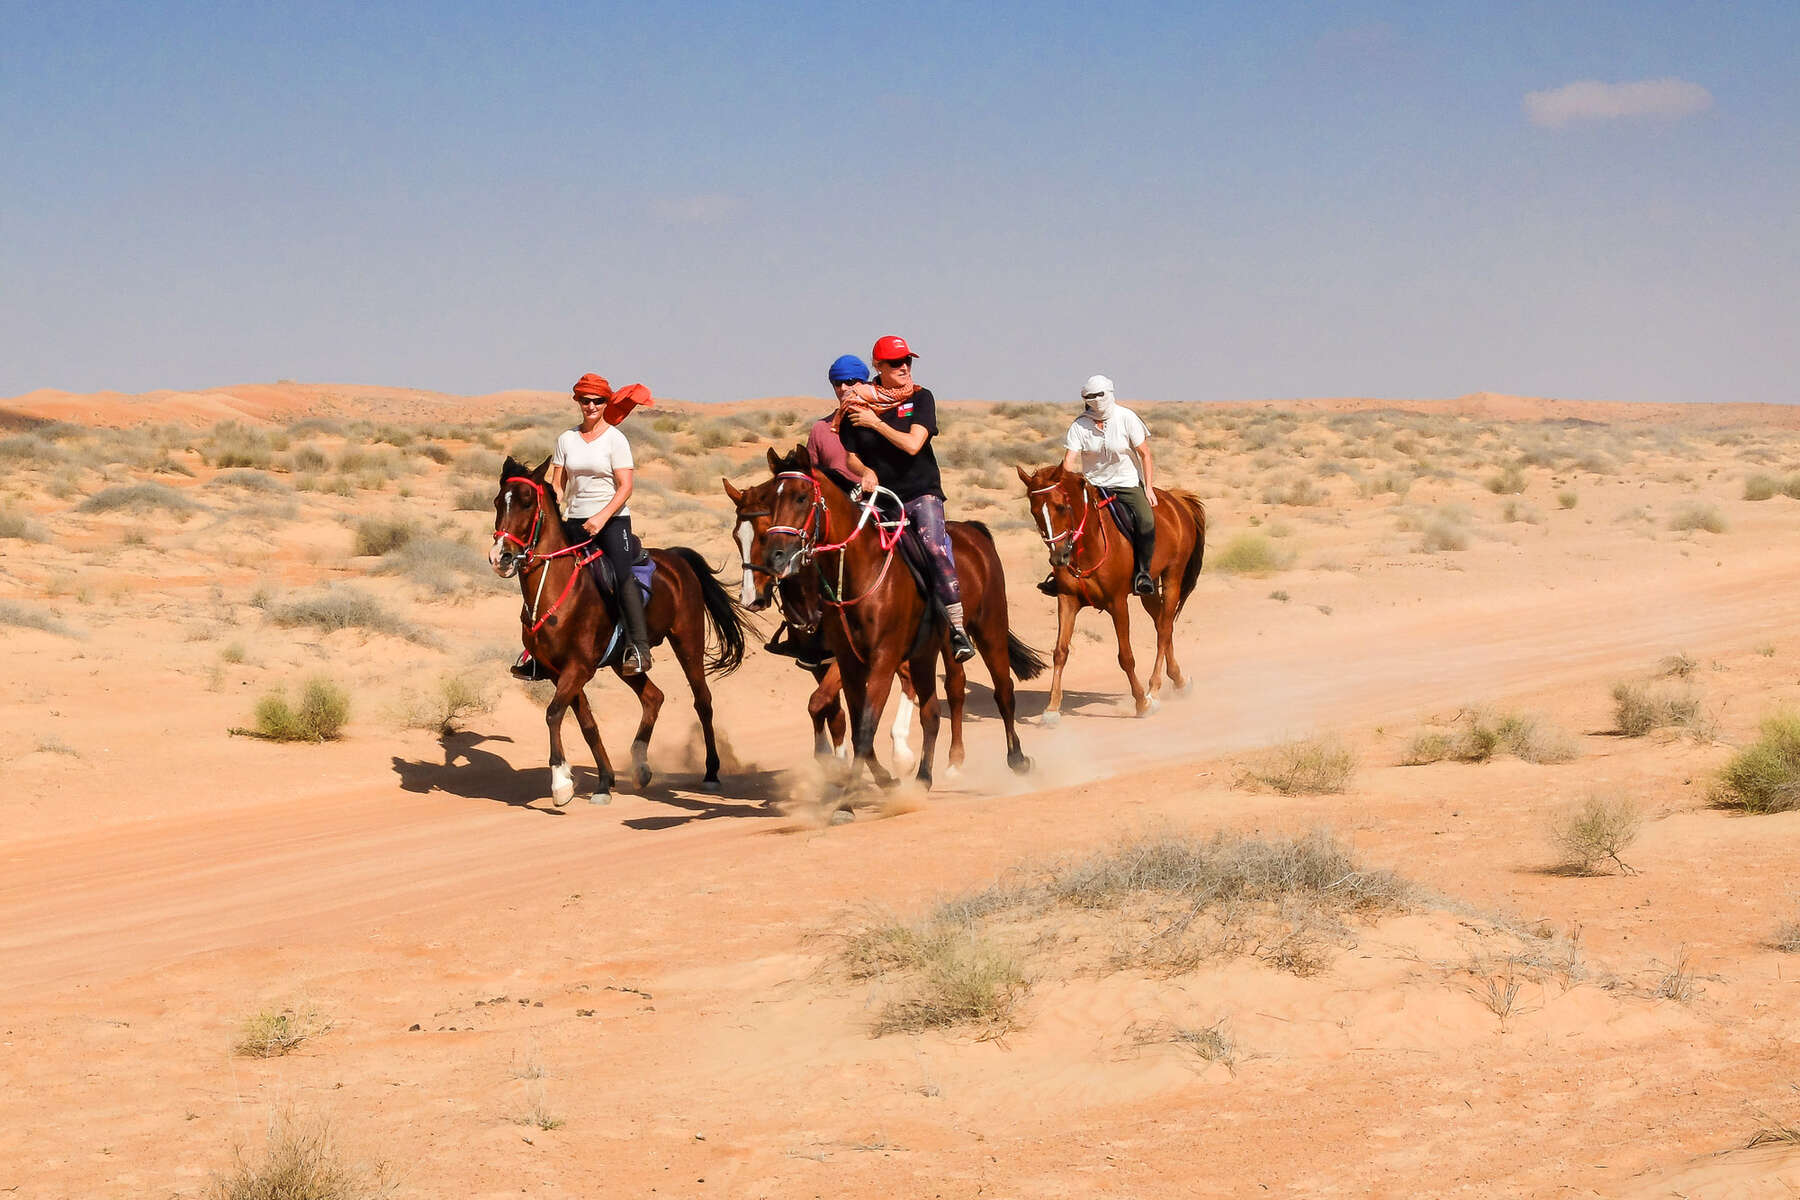 A group of riders in the Arabian desert